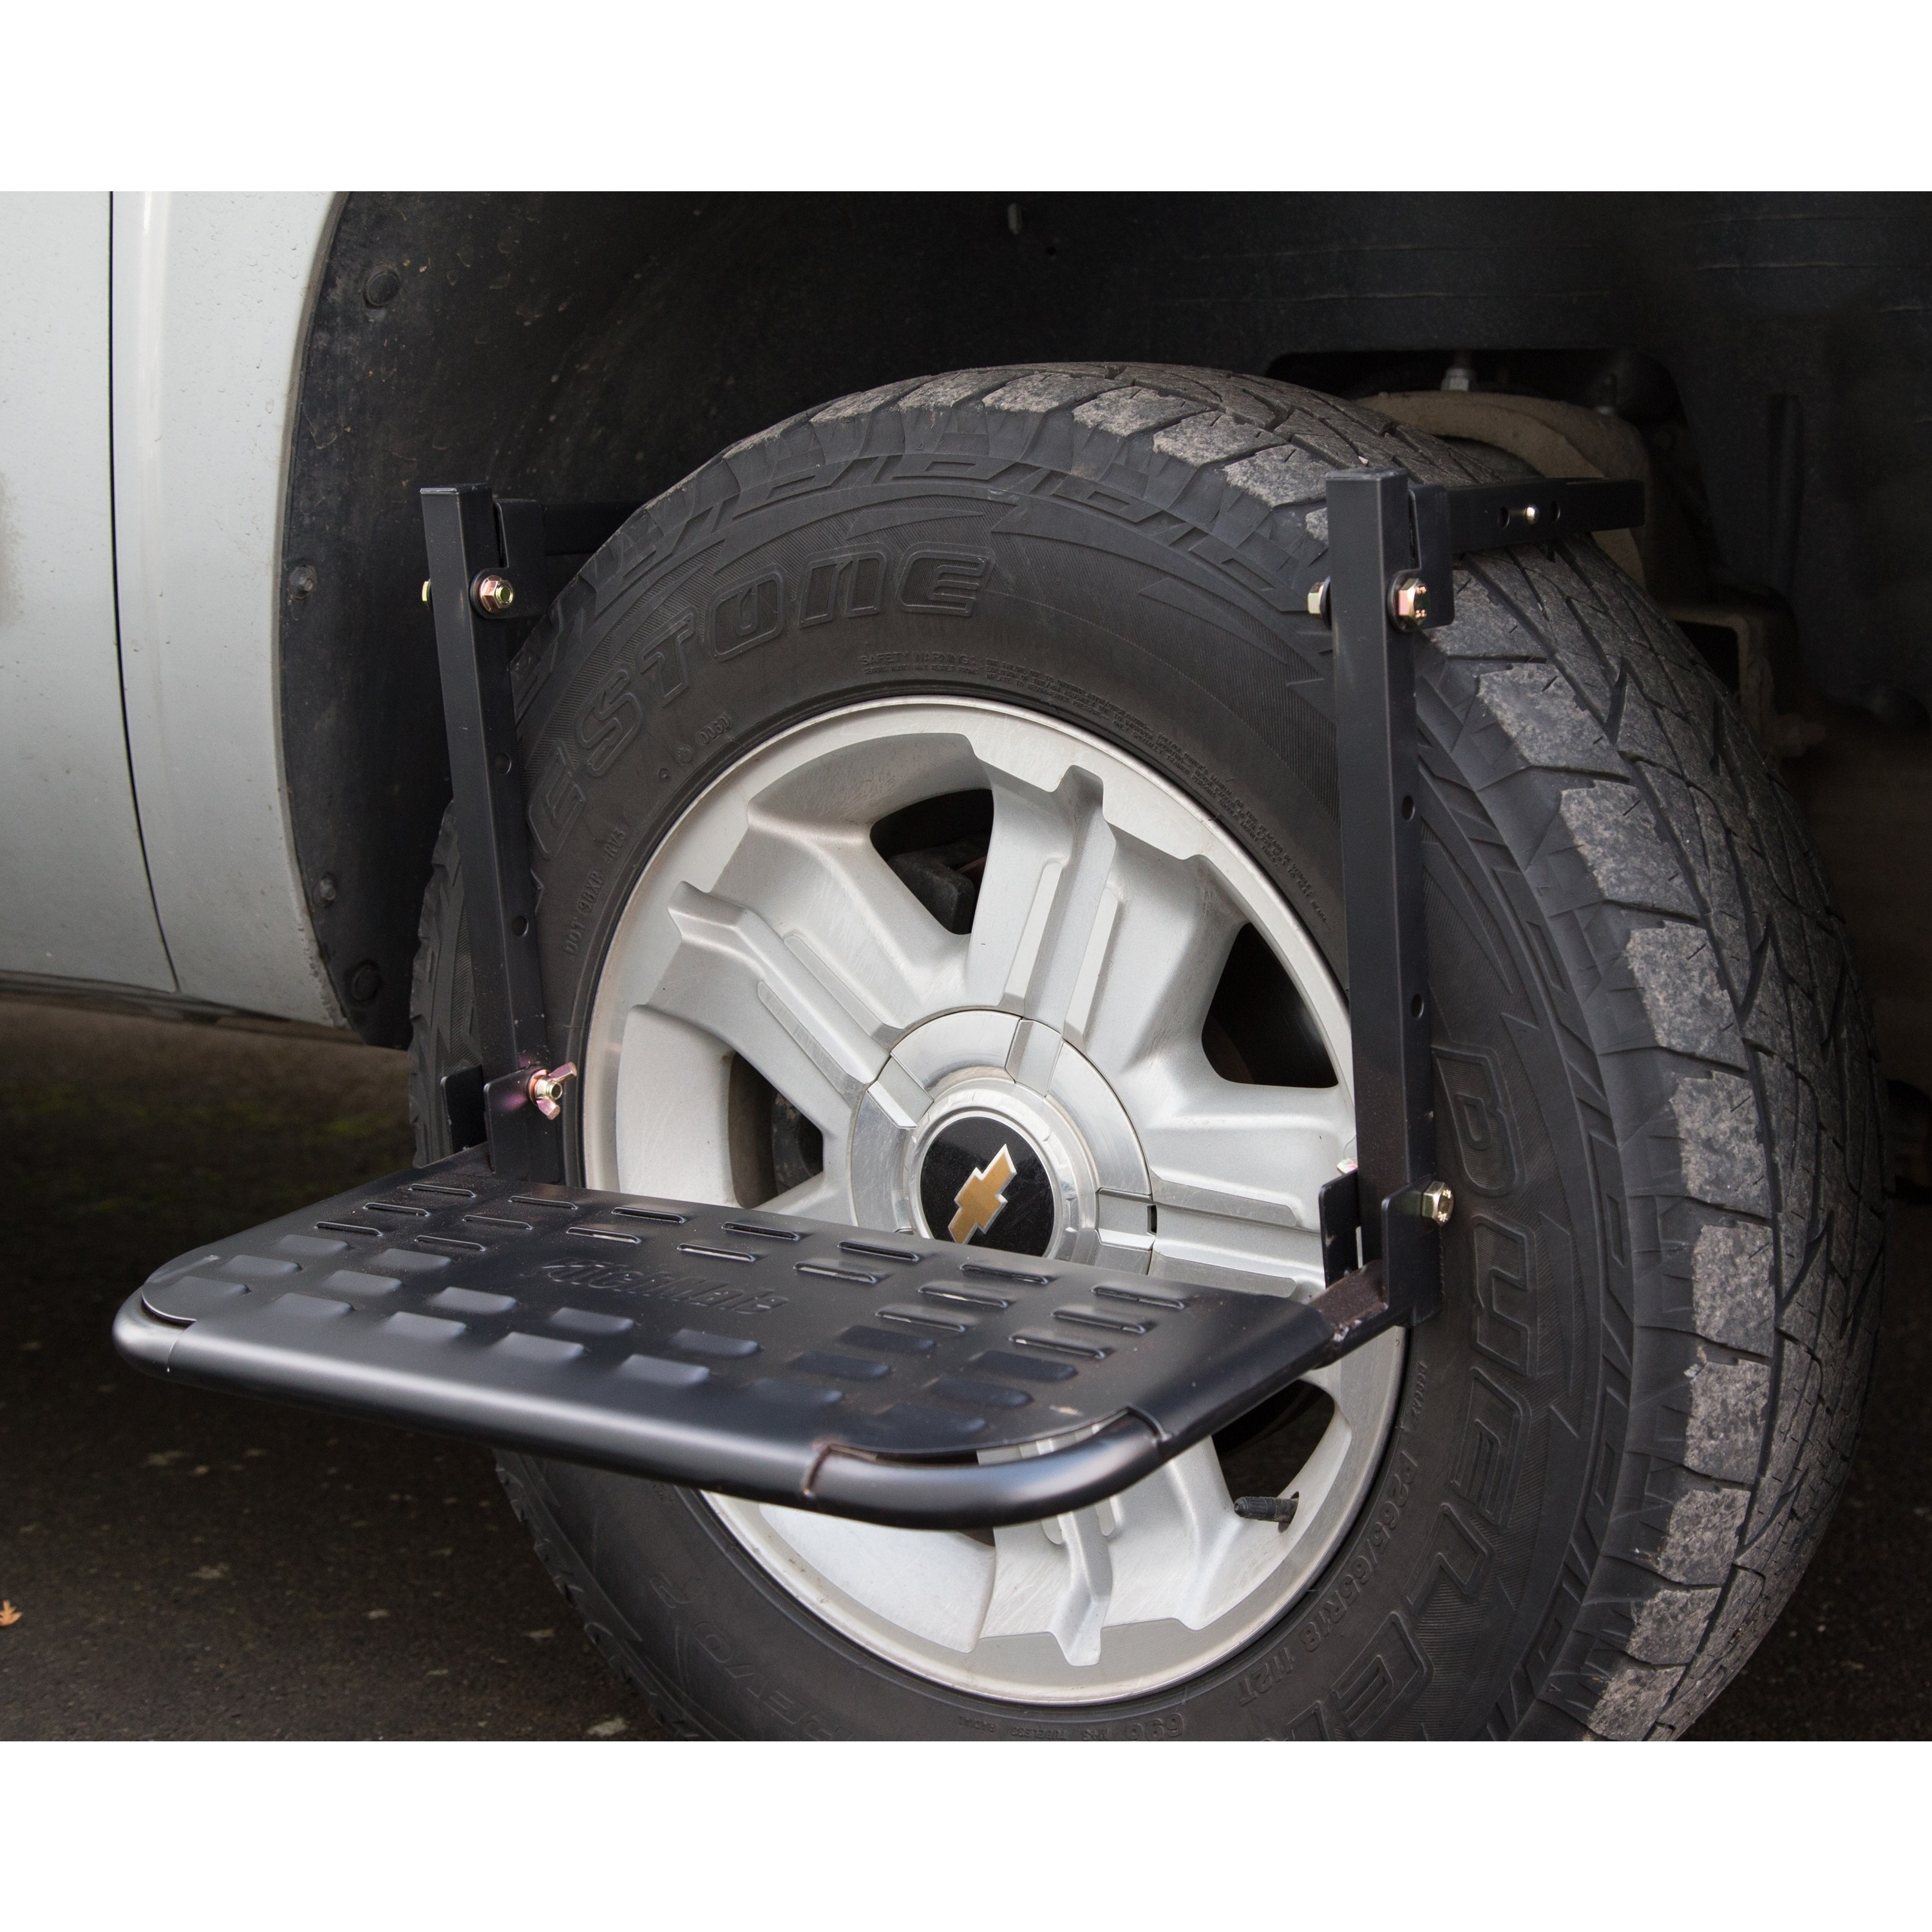 HitchMate Tire Step for Truck and SUV (TireStep), Black